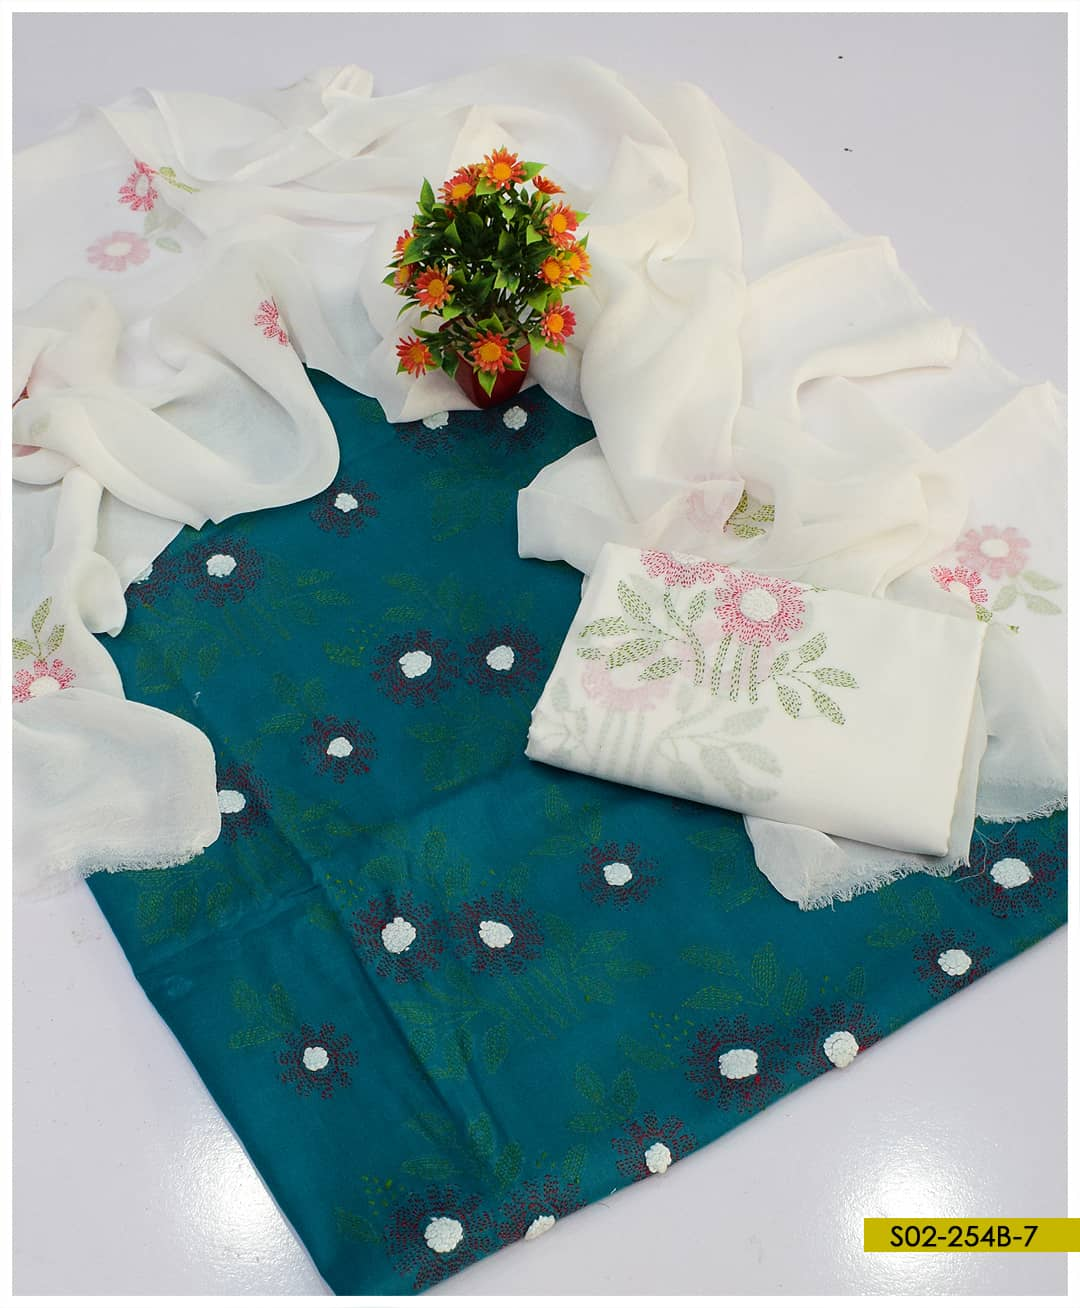 3 PCs Lawn Hand Embroidered Kachaboor Work Suits With Chiffon Dupatta - S02-254B7